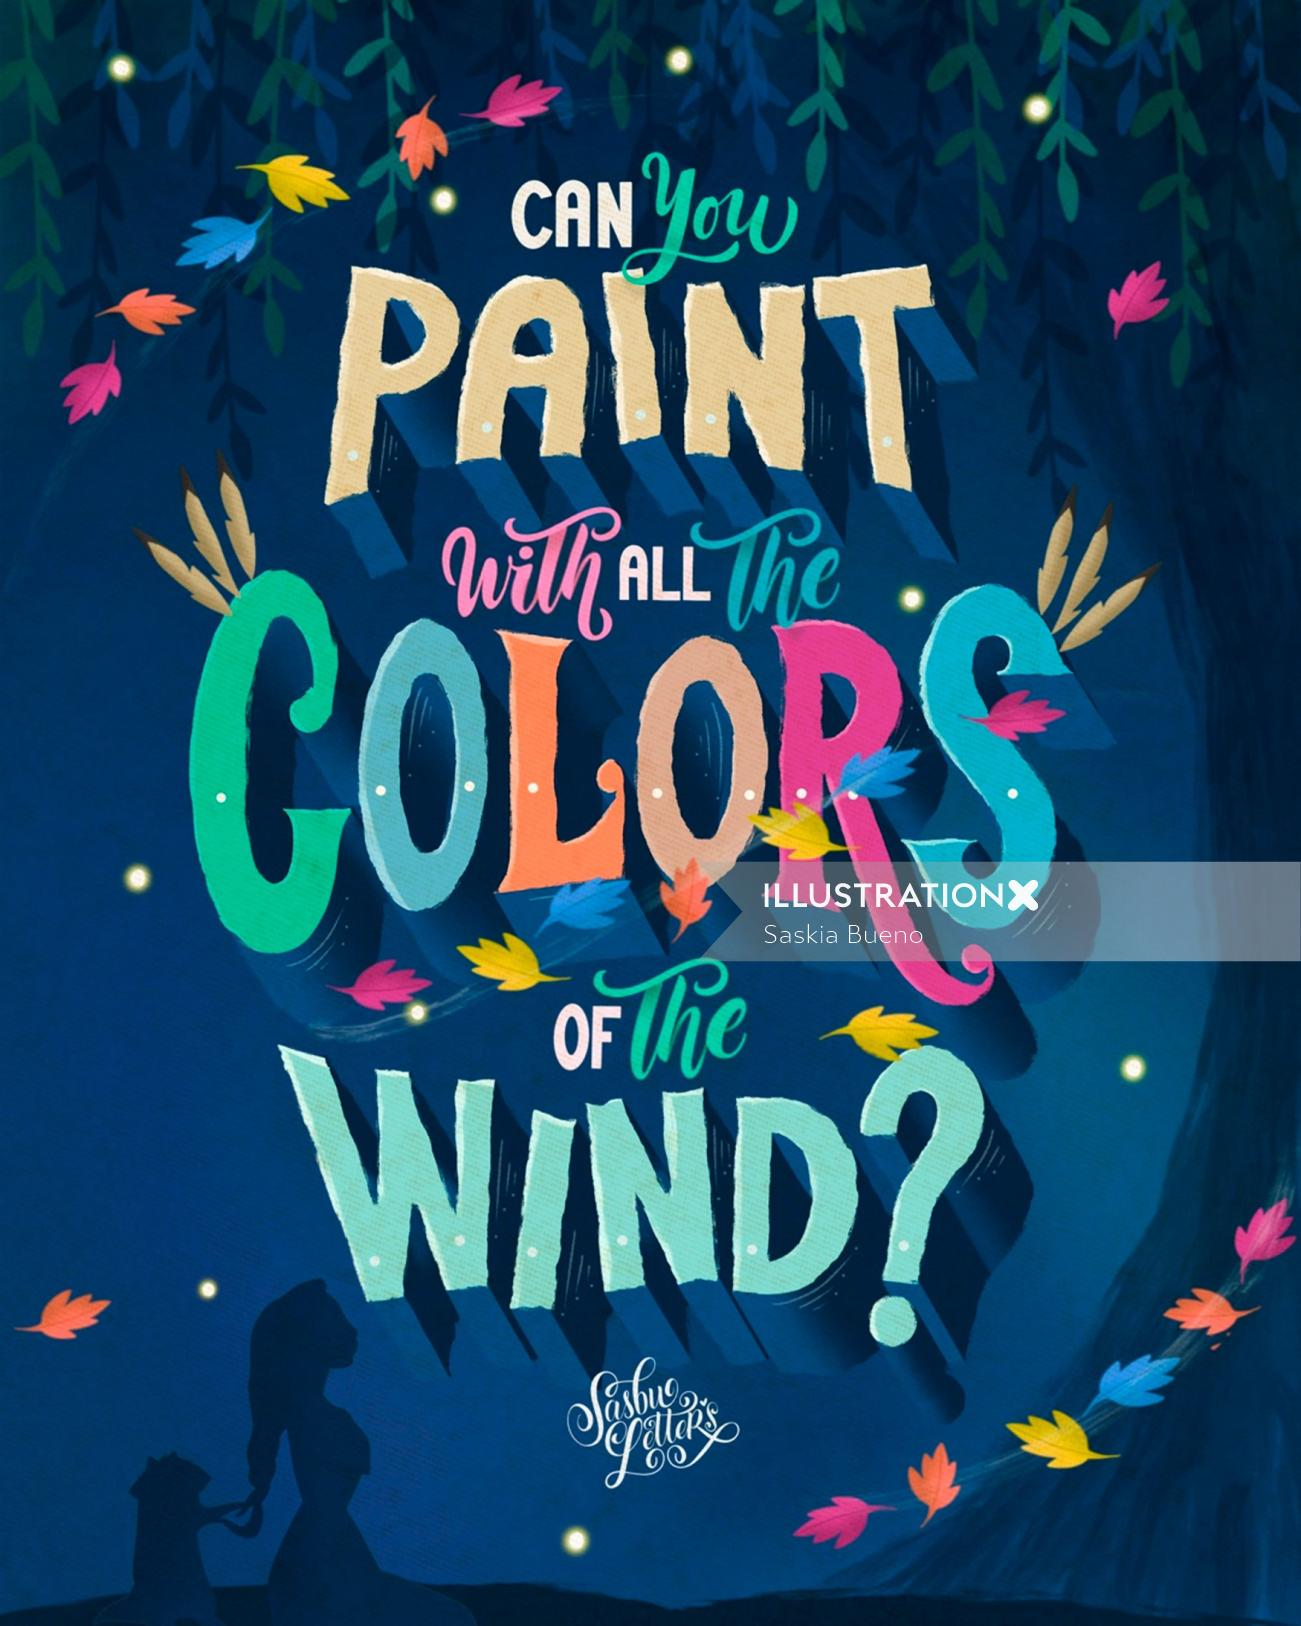 Lettering art of can you paint with all color